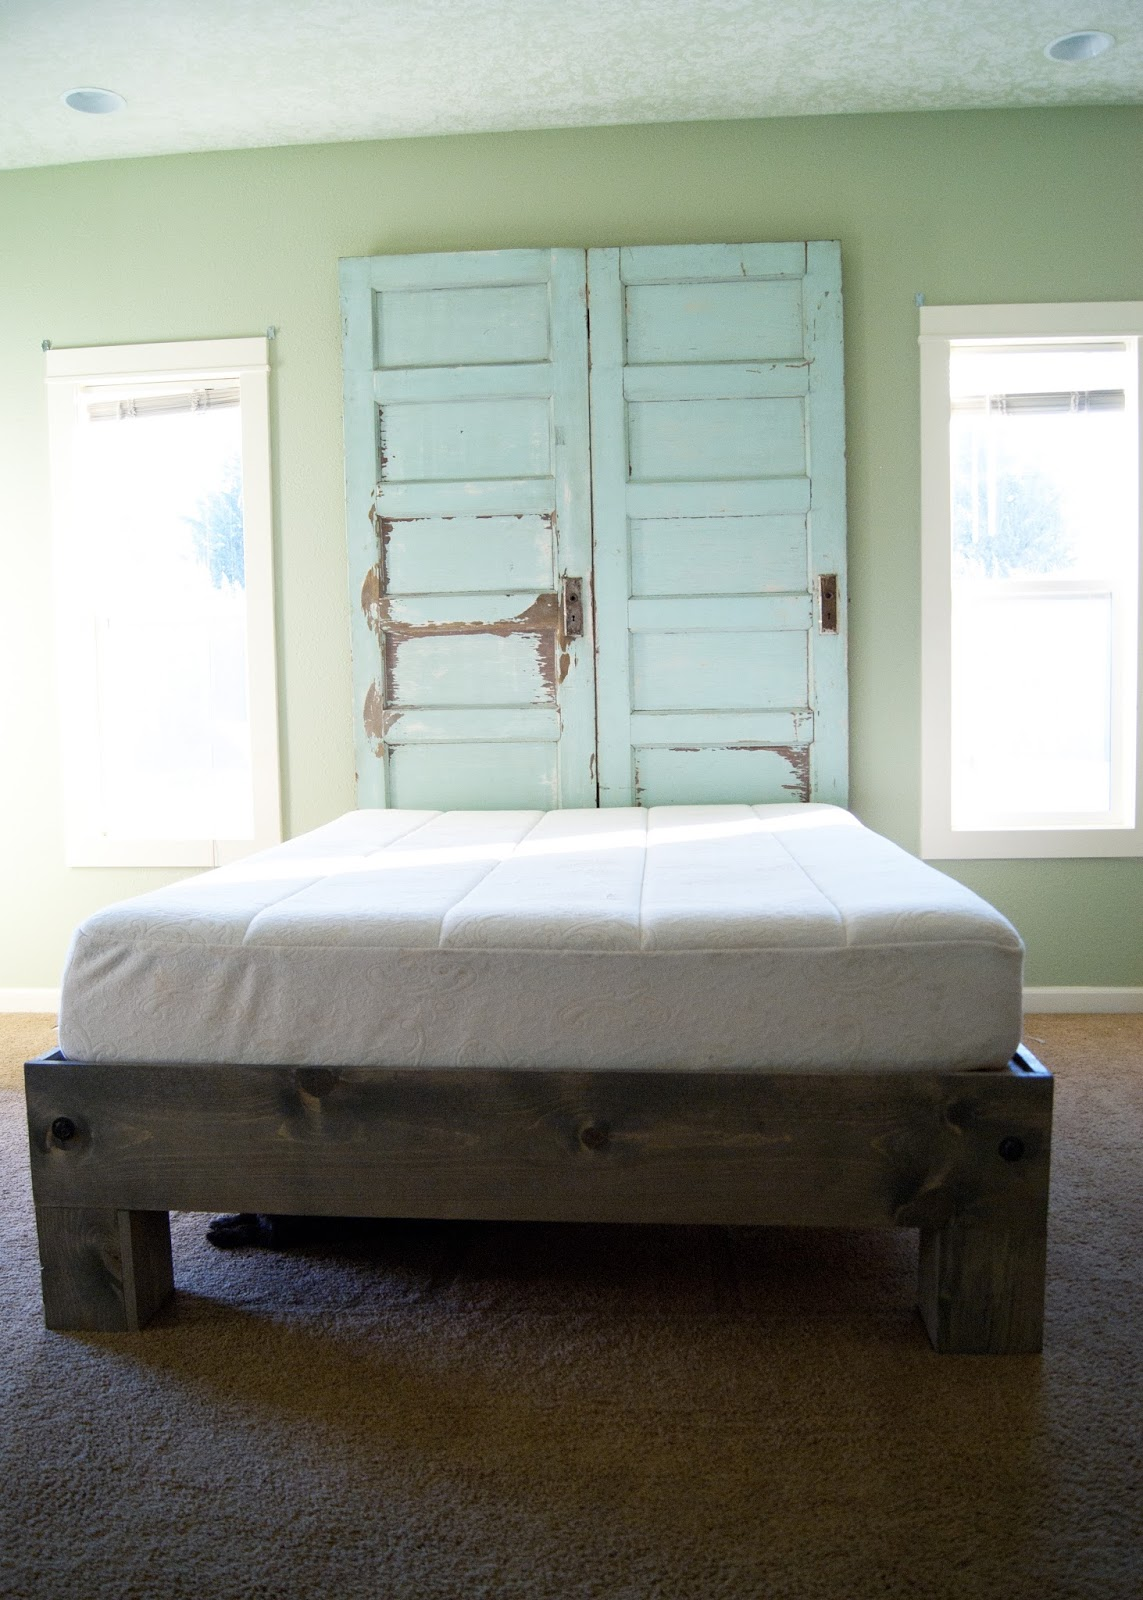 Design Diy Platform Bed diy platform bed salvaged door headboard part one averie and old doors for a headboard